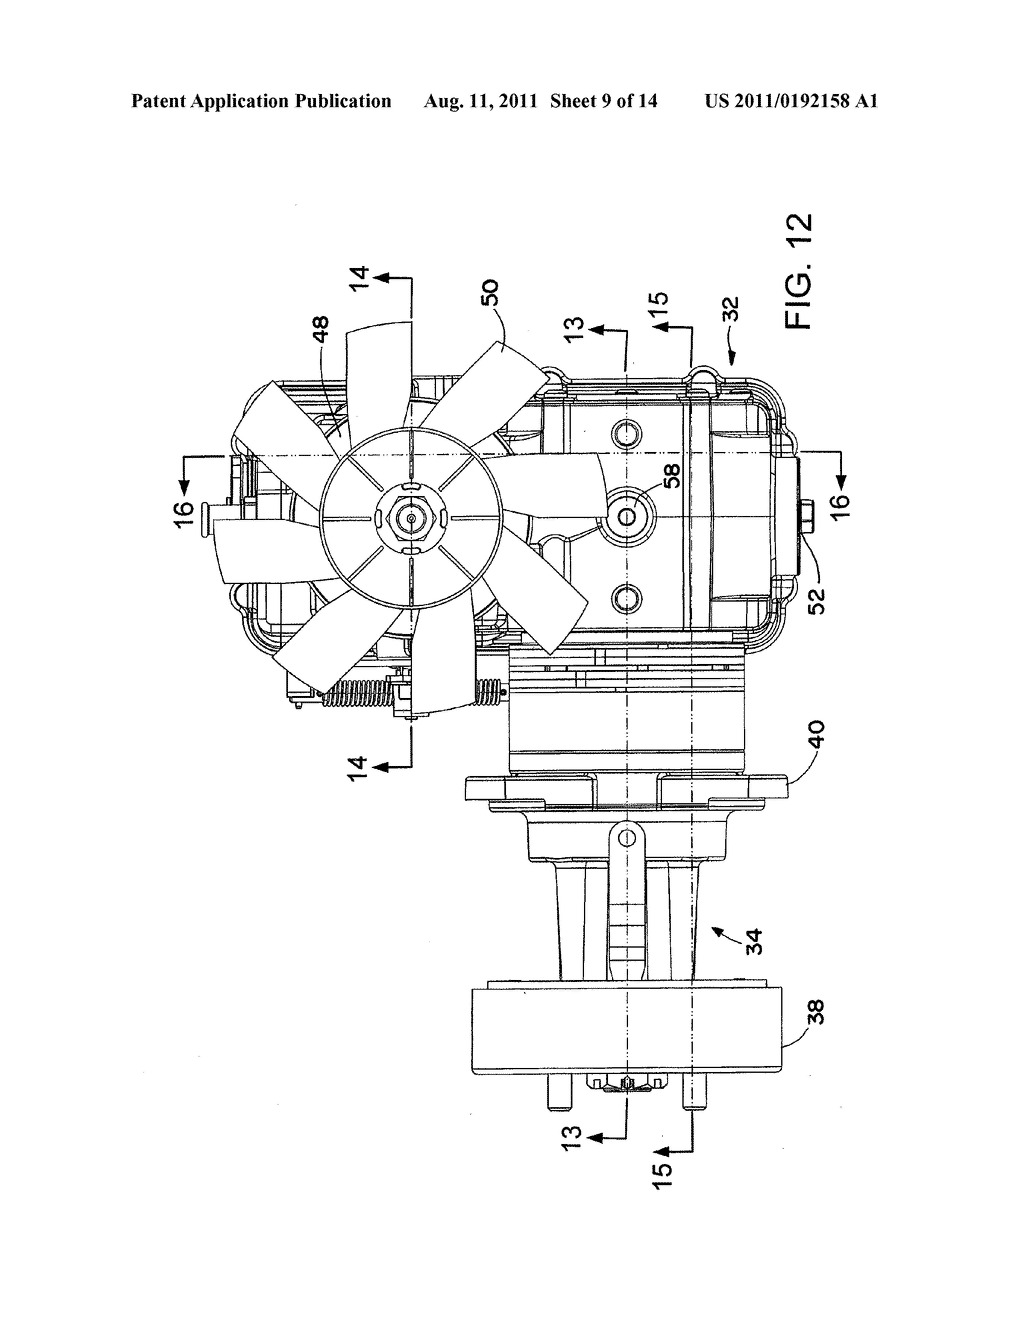 hight resolution of integrated hydrostatic transmission diagram schematic and image 10 mtd yard machines parts diagram hydrostatic transmission diagram